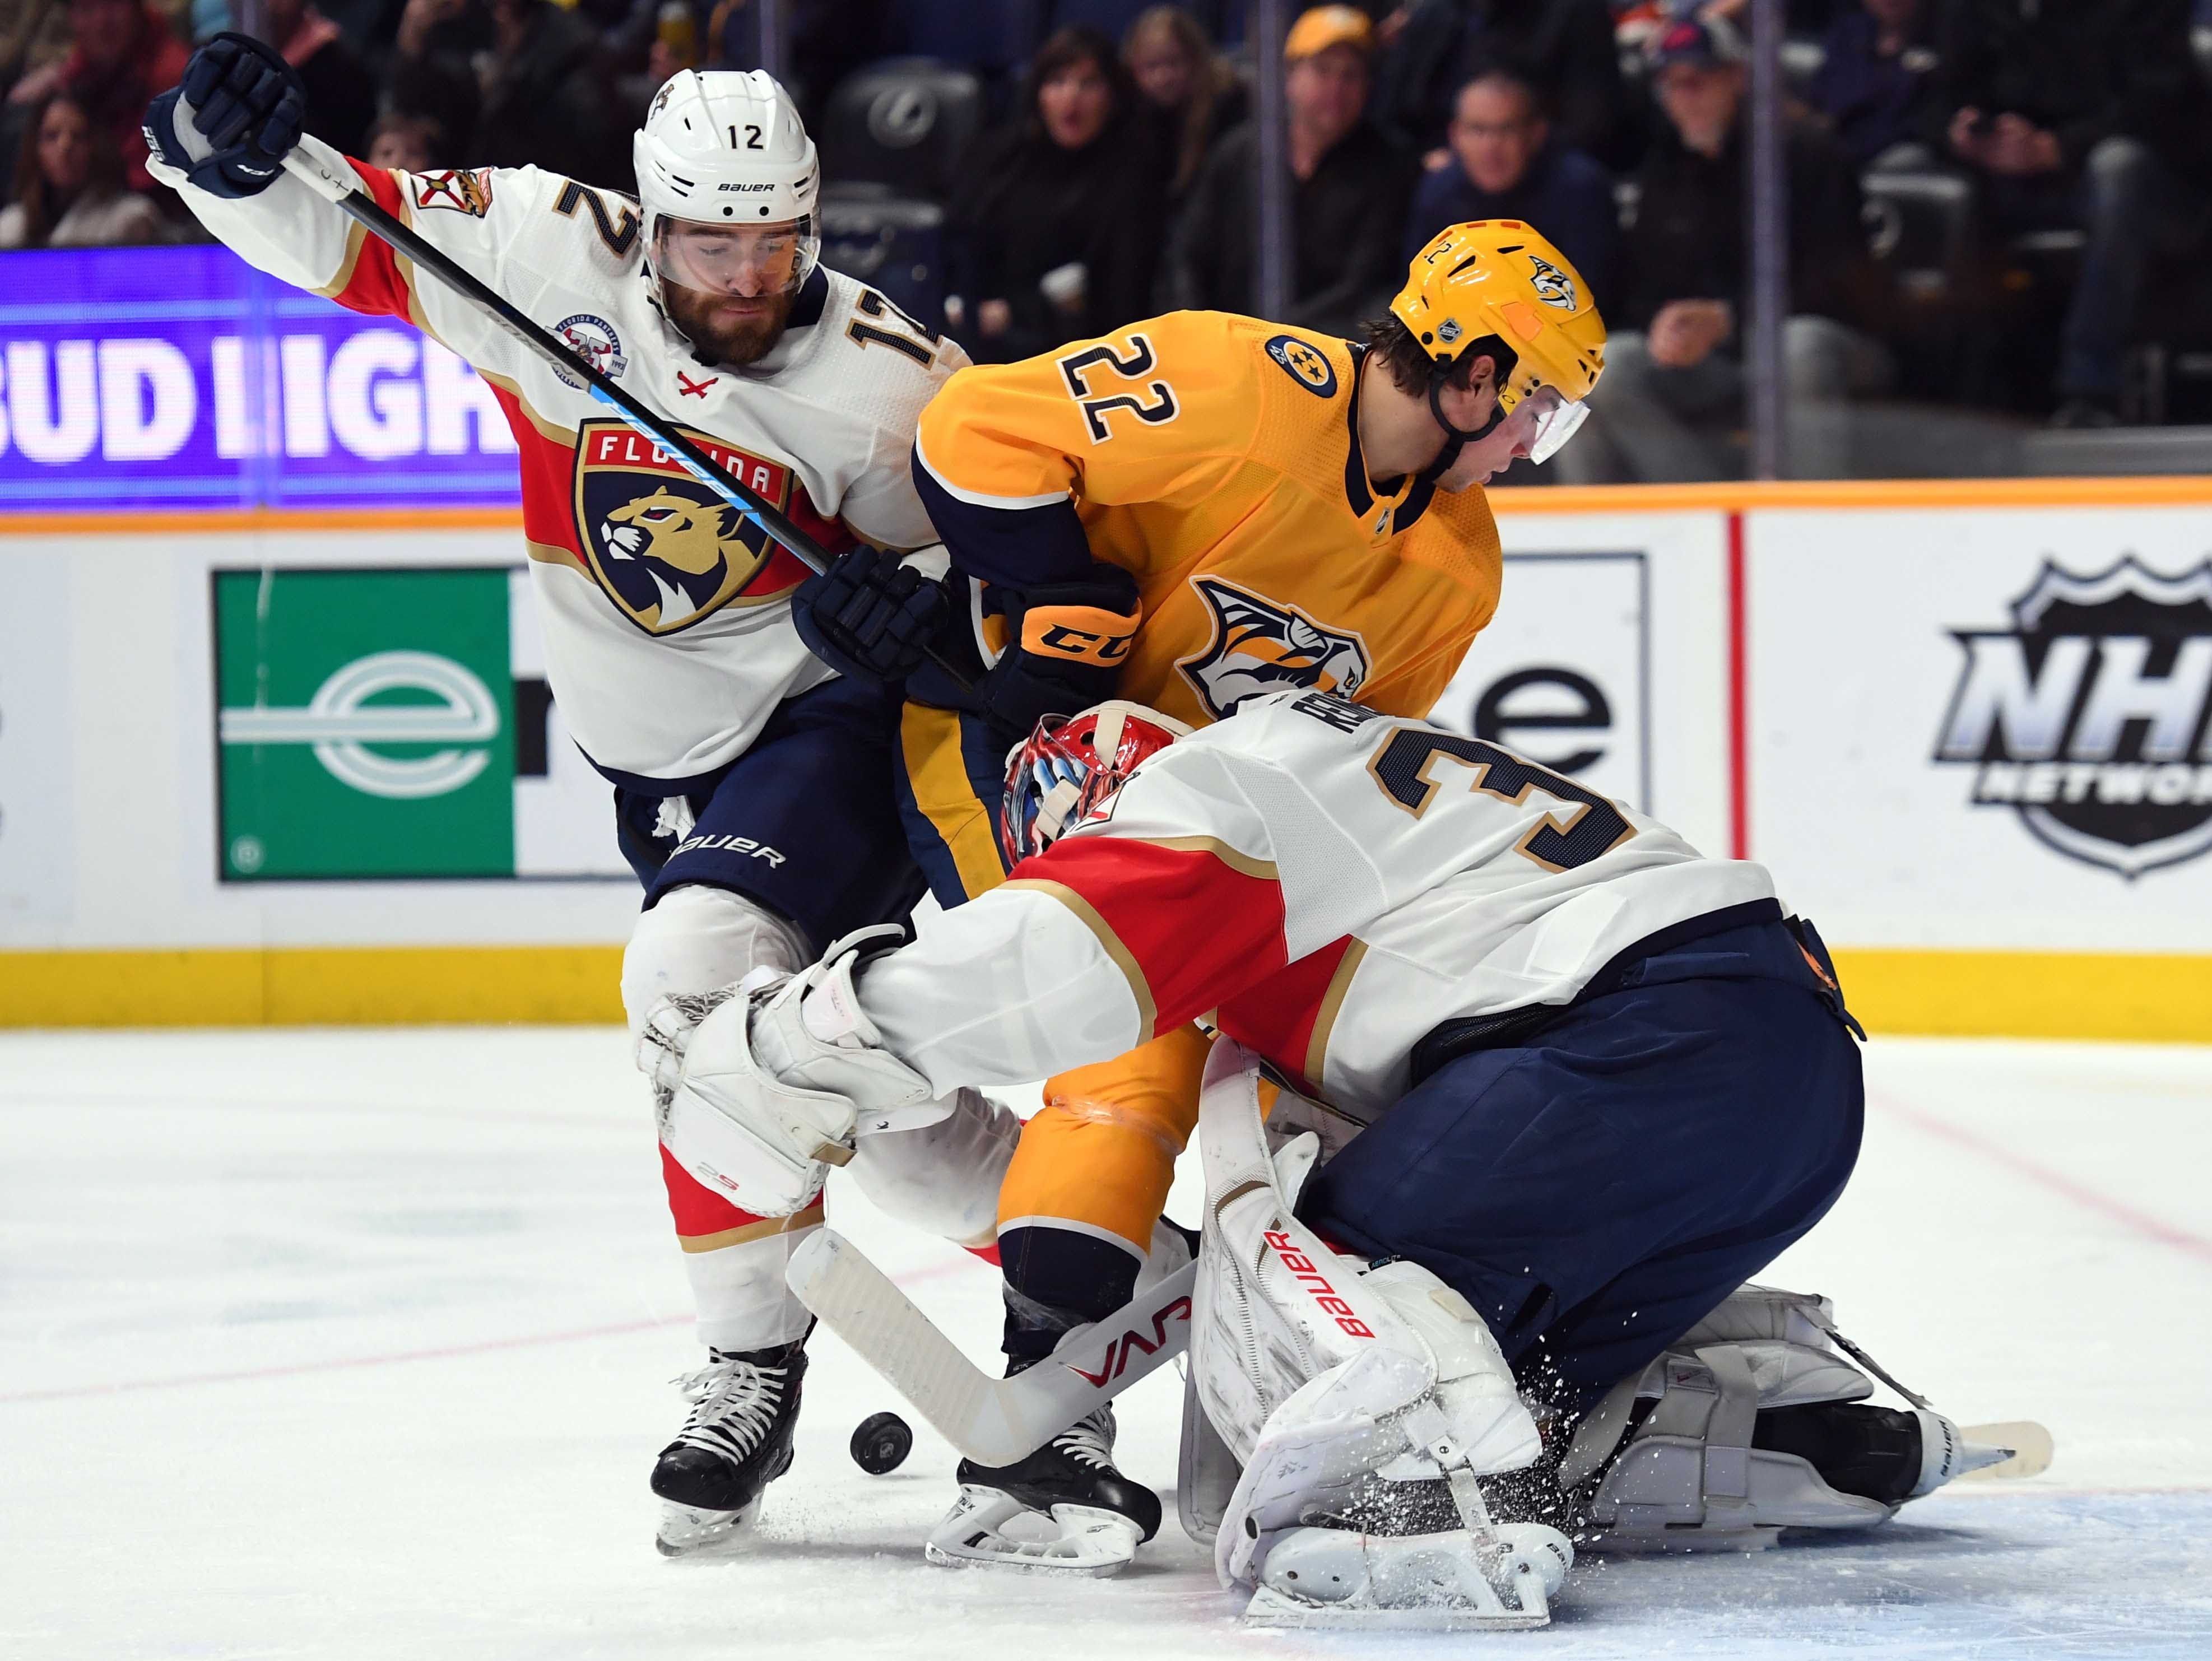 Nashville Predators left wing Kevin Fiala (22) works against Florida Panthers defenseman Ian McCoshen (12) to get a shot on Florida Panthers goaltender James Reimer (34) during the first period at Bridgestone Arena.